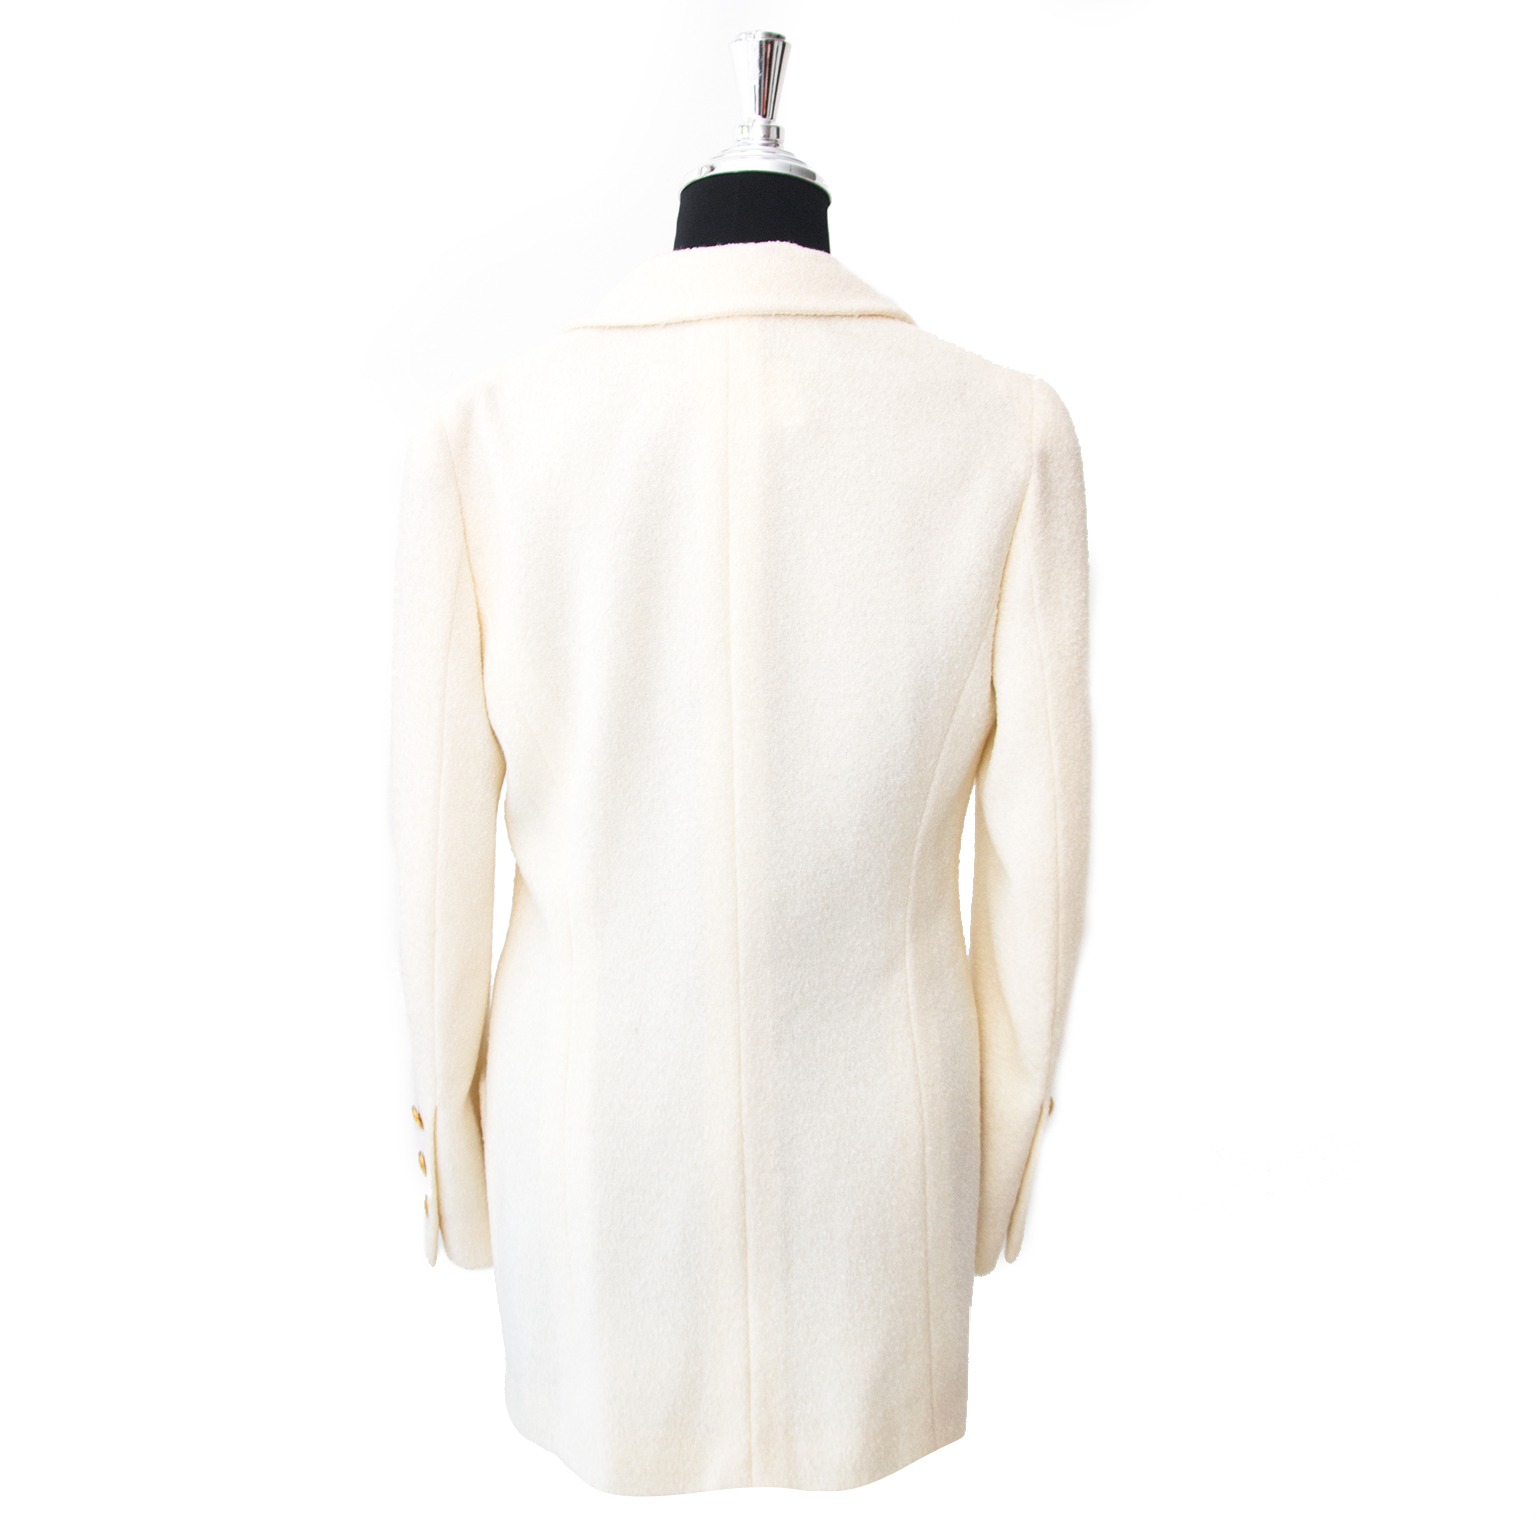 We are selling a 100% authentic Chanel Beige Woolen Blazer